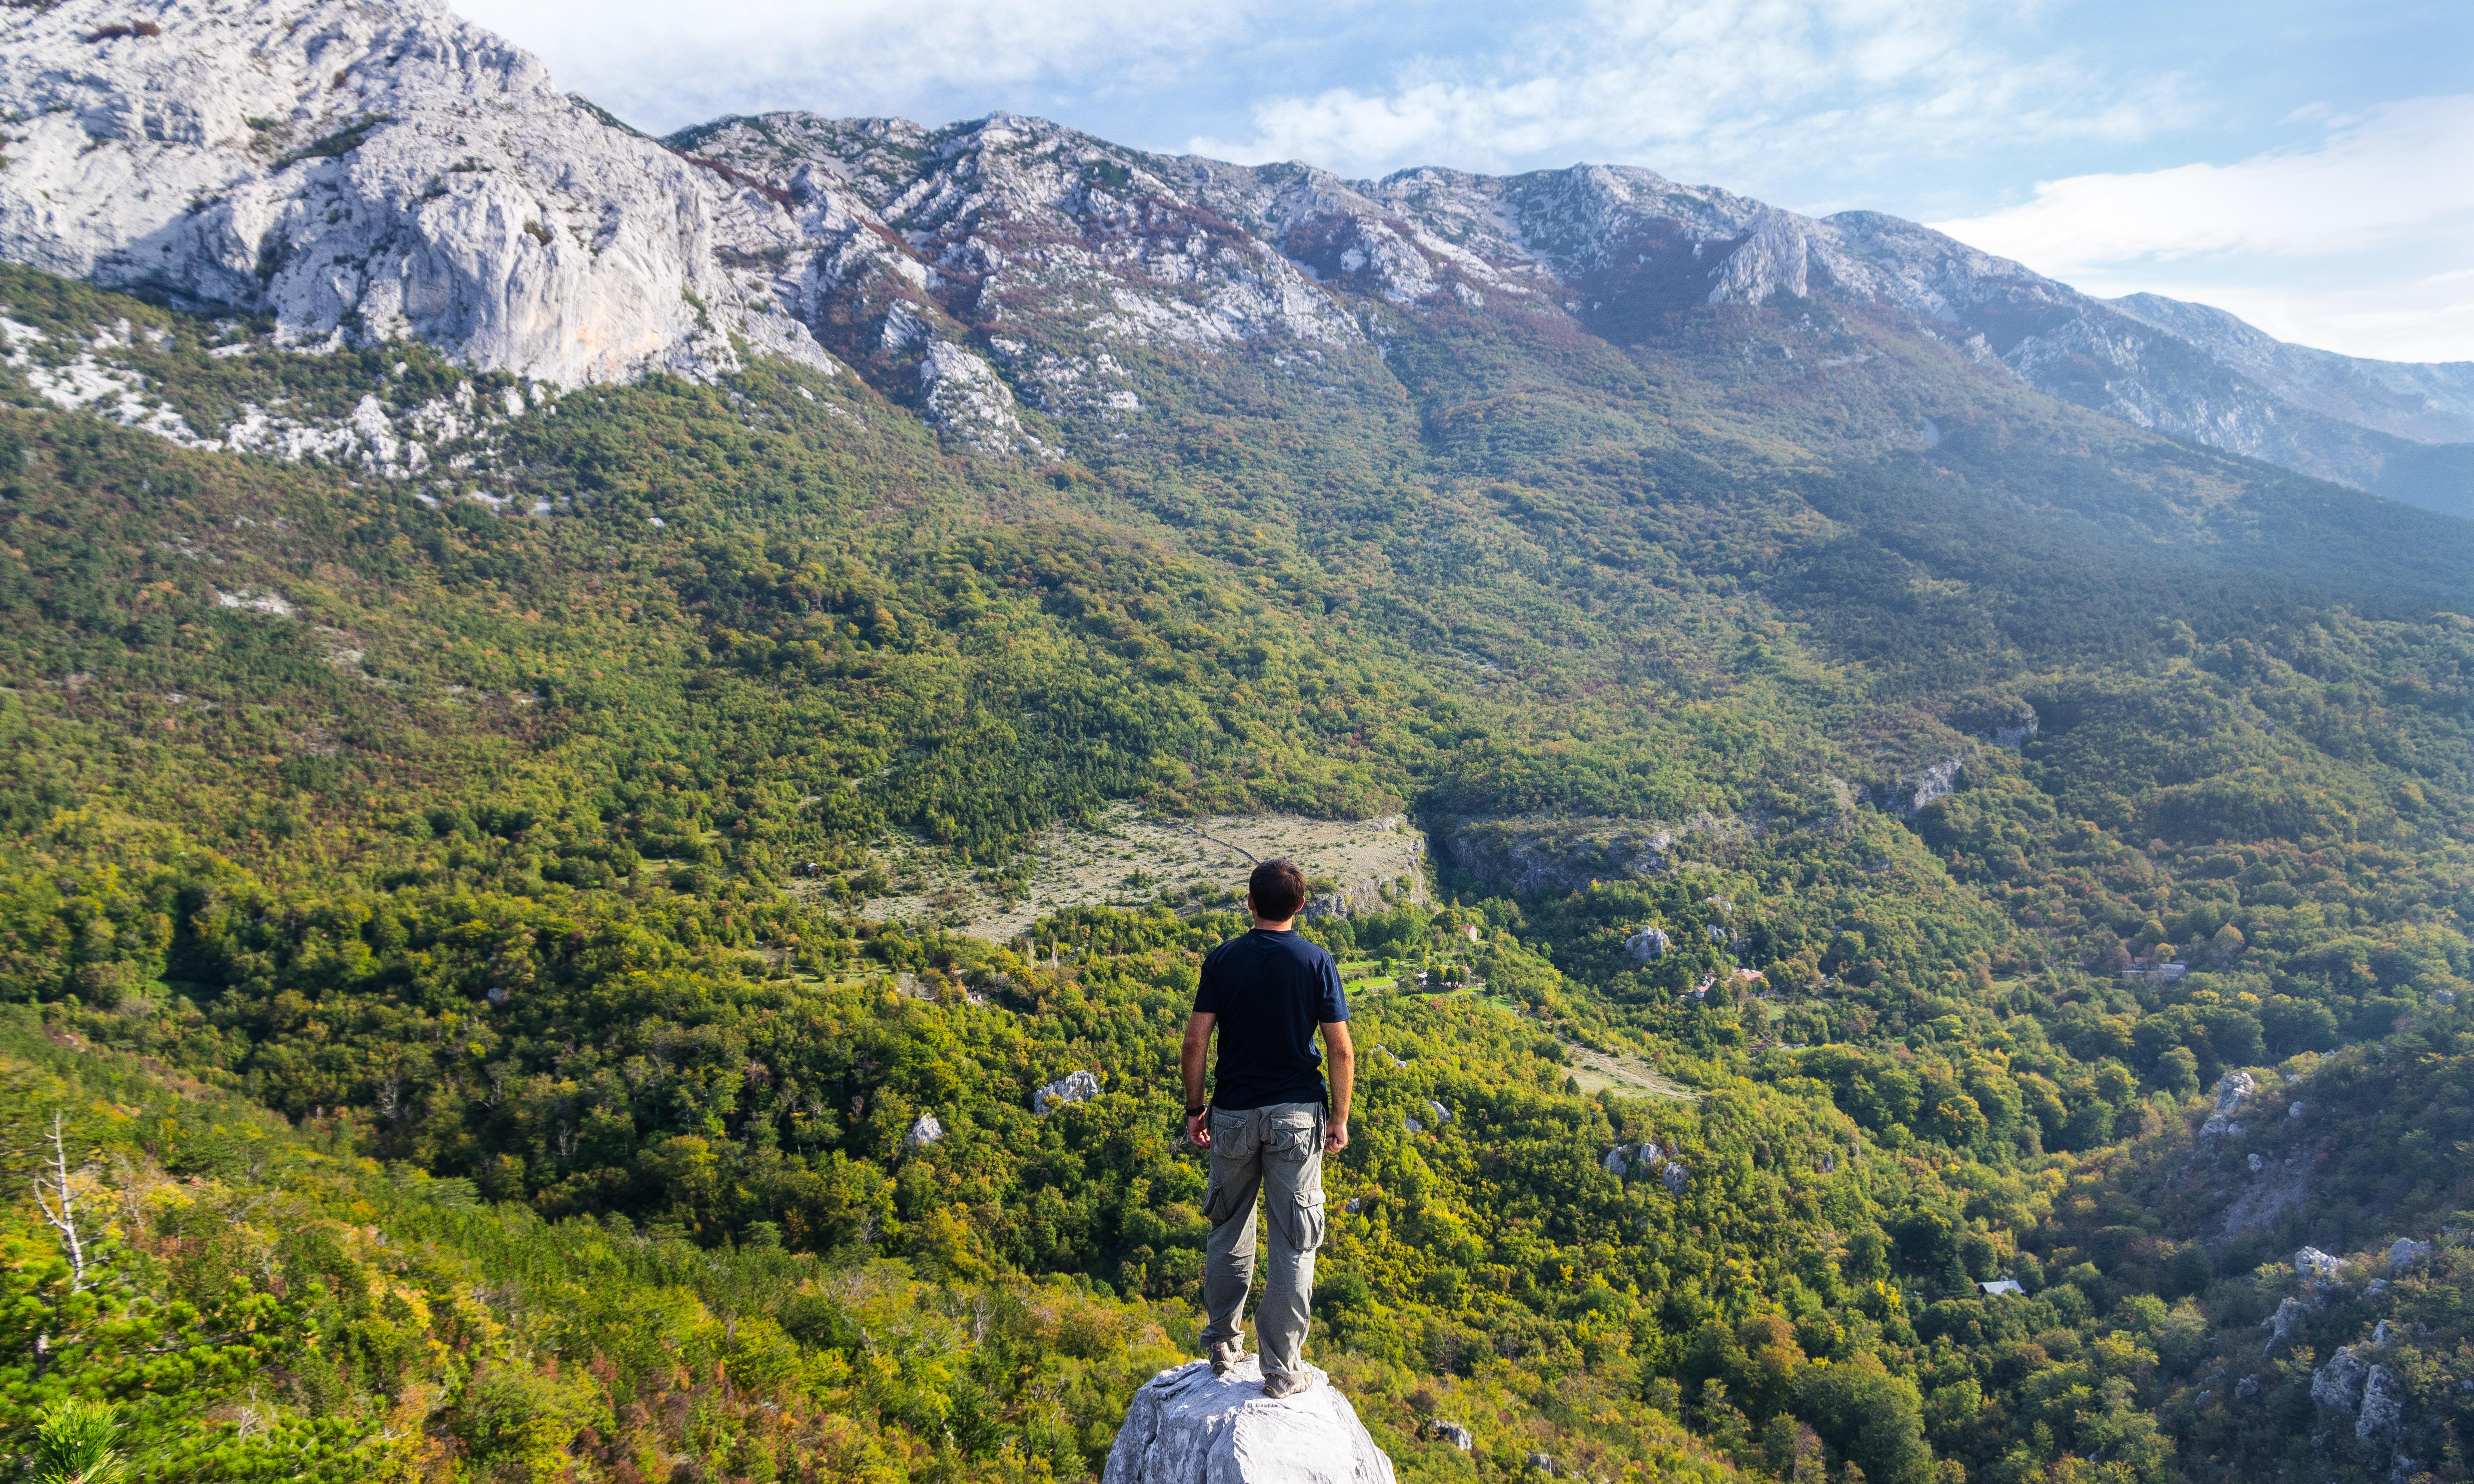 'Life on the edge of civilisation': hiking in Croatia's mountains